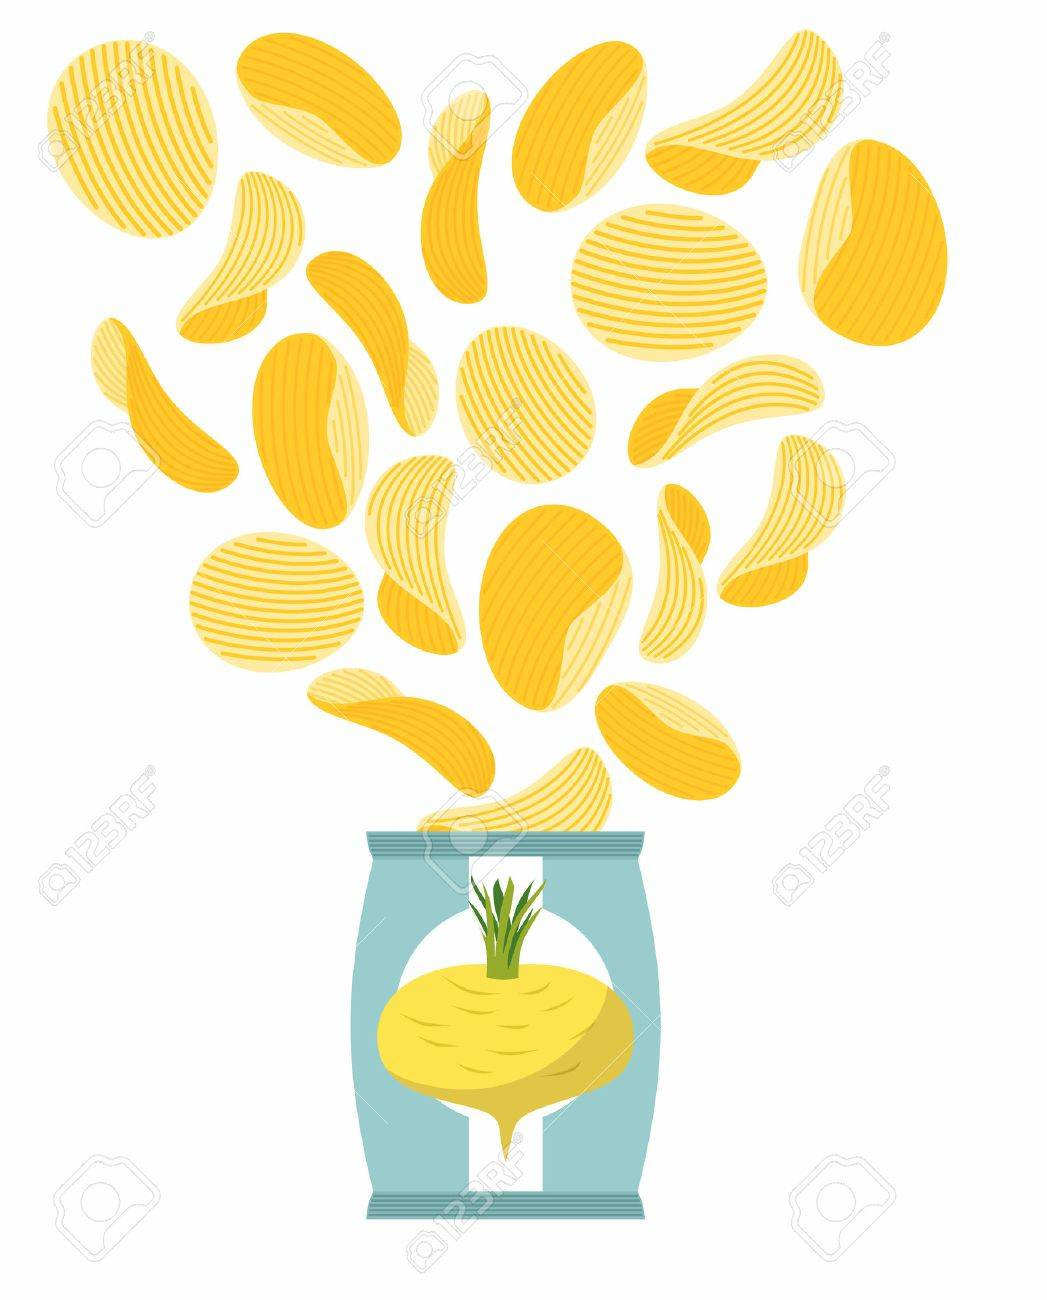 Potato chips taste of turnips. Packaging, bag of chips on a white background. Chips flying out from Pack. Delicacy for vegetarians. Food vector illustration. - 42503764